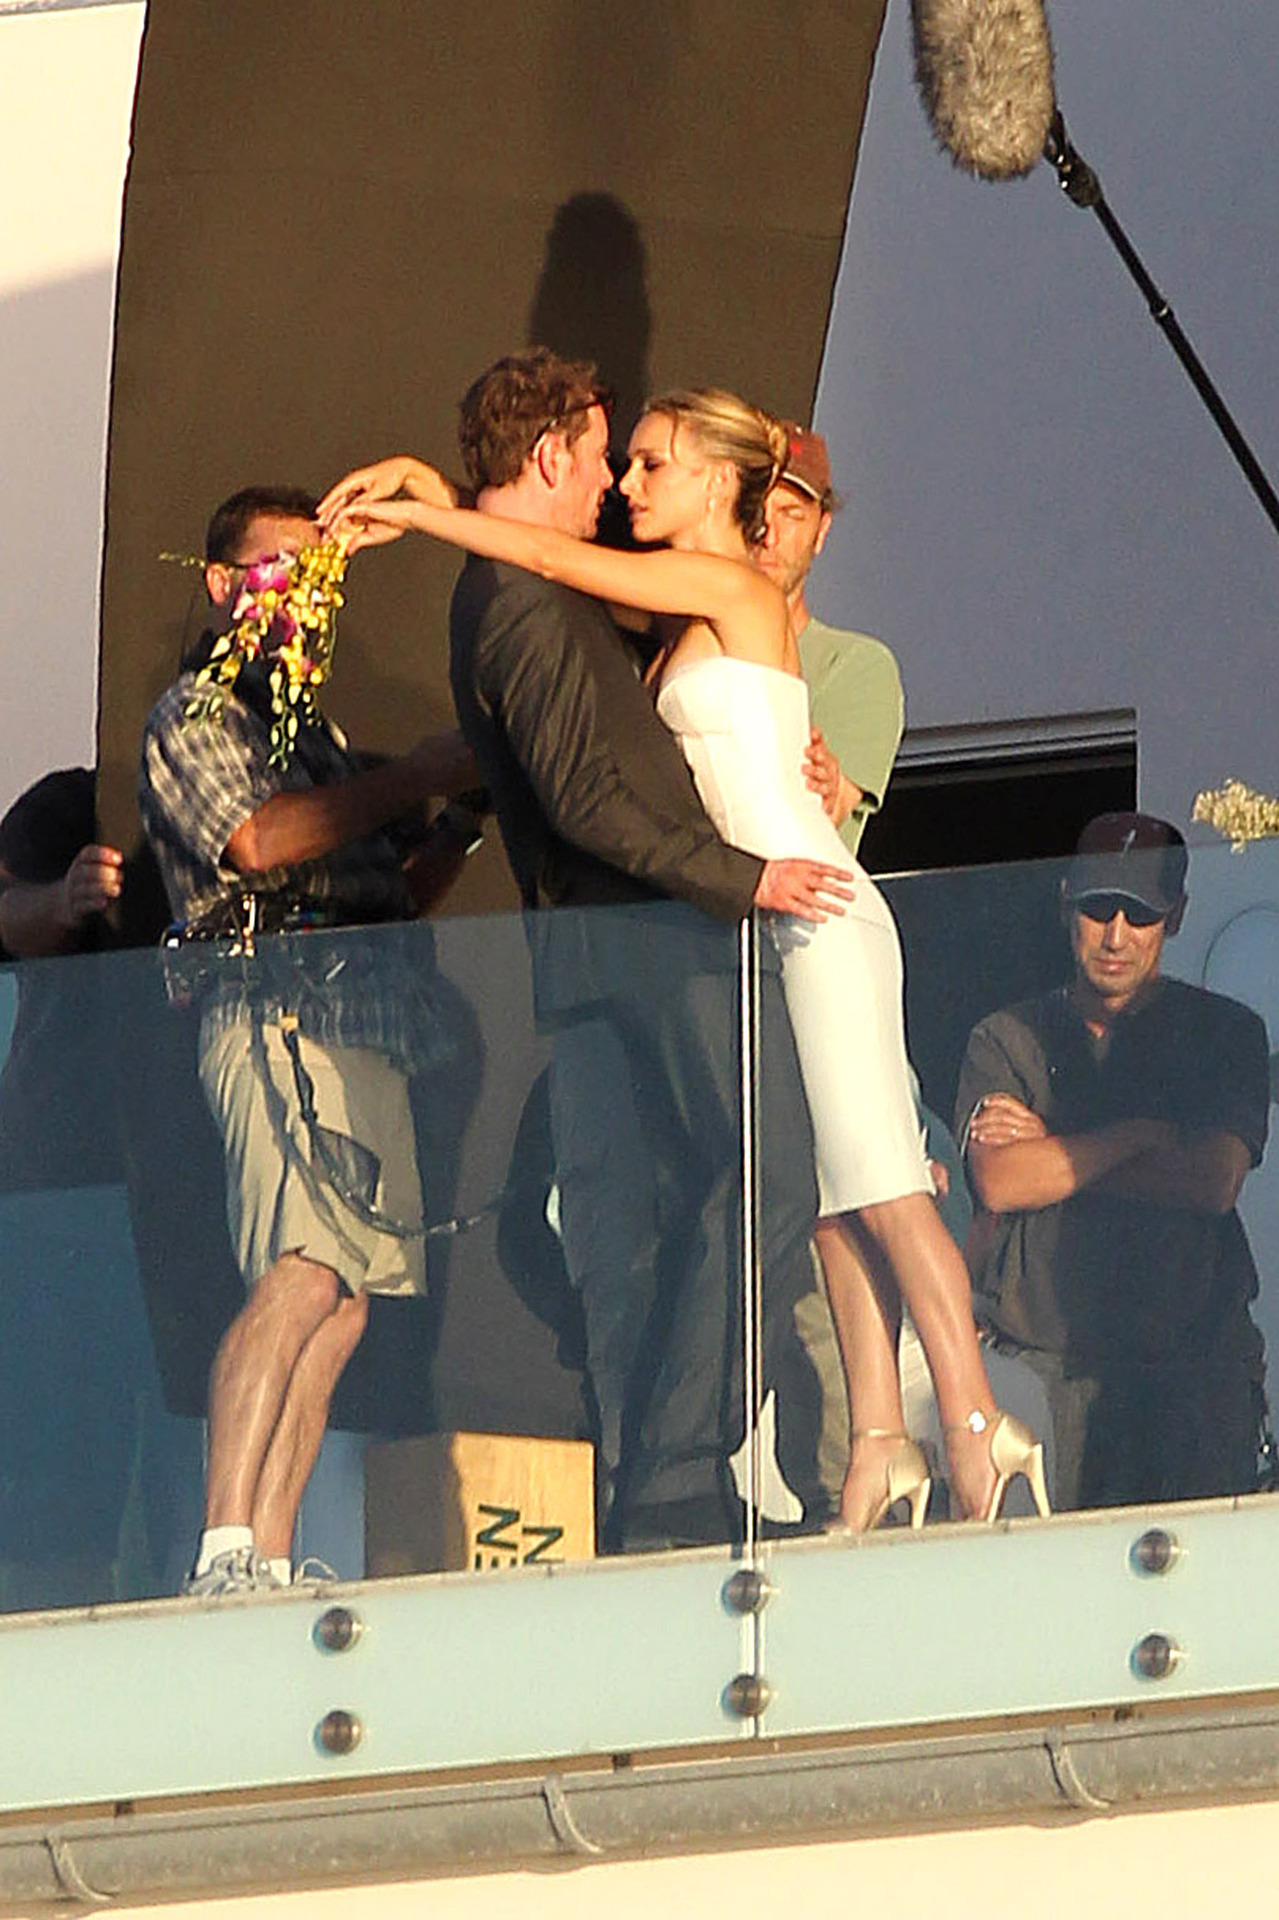 Michael Fassbender and Natalie Portman filming the untitiled Terrence Malick fi;m in Austin, October 19th